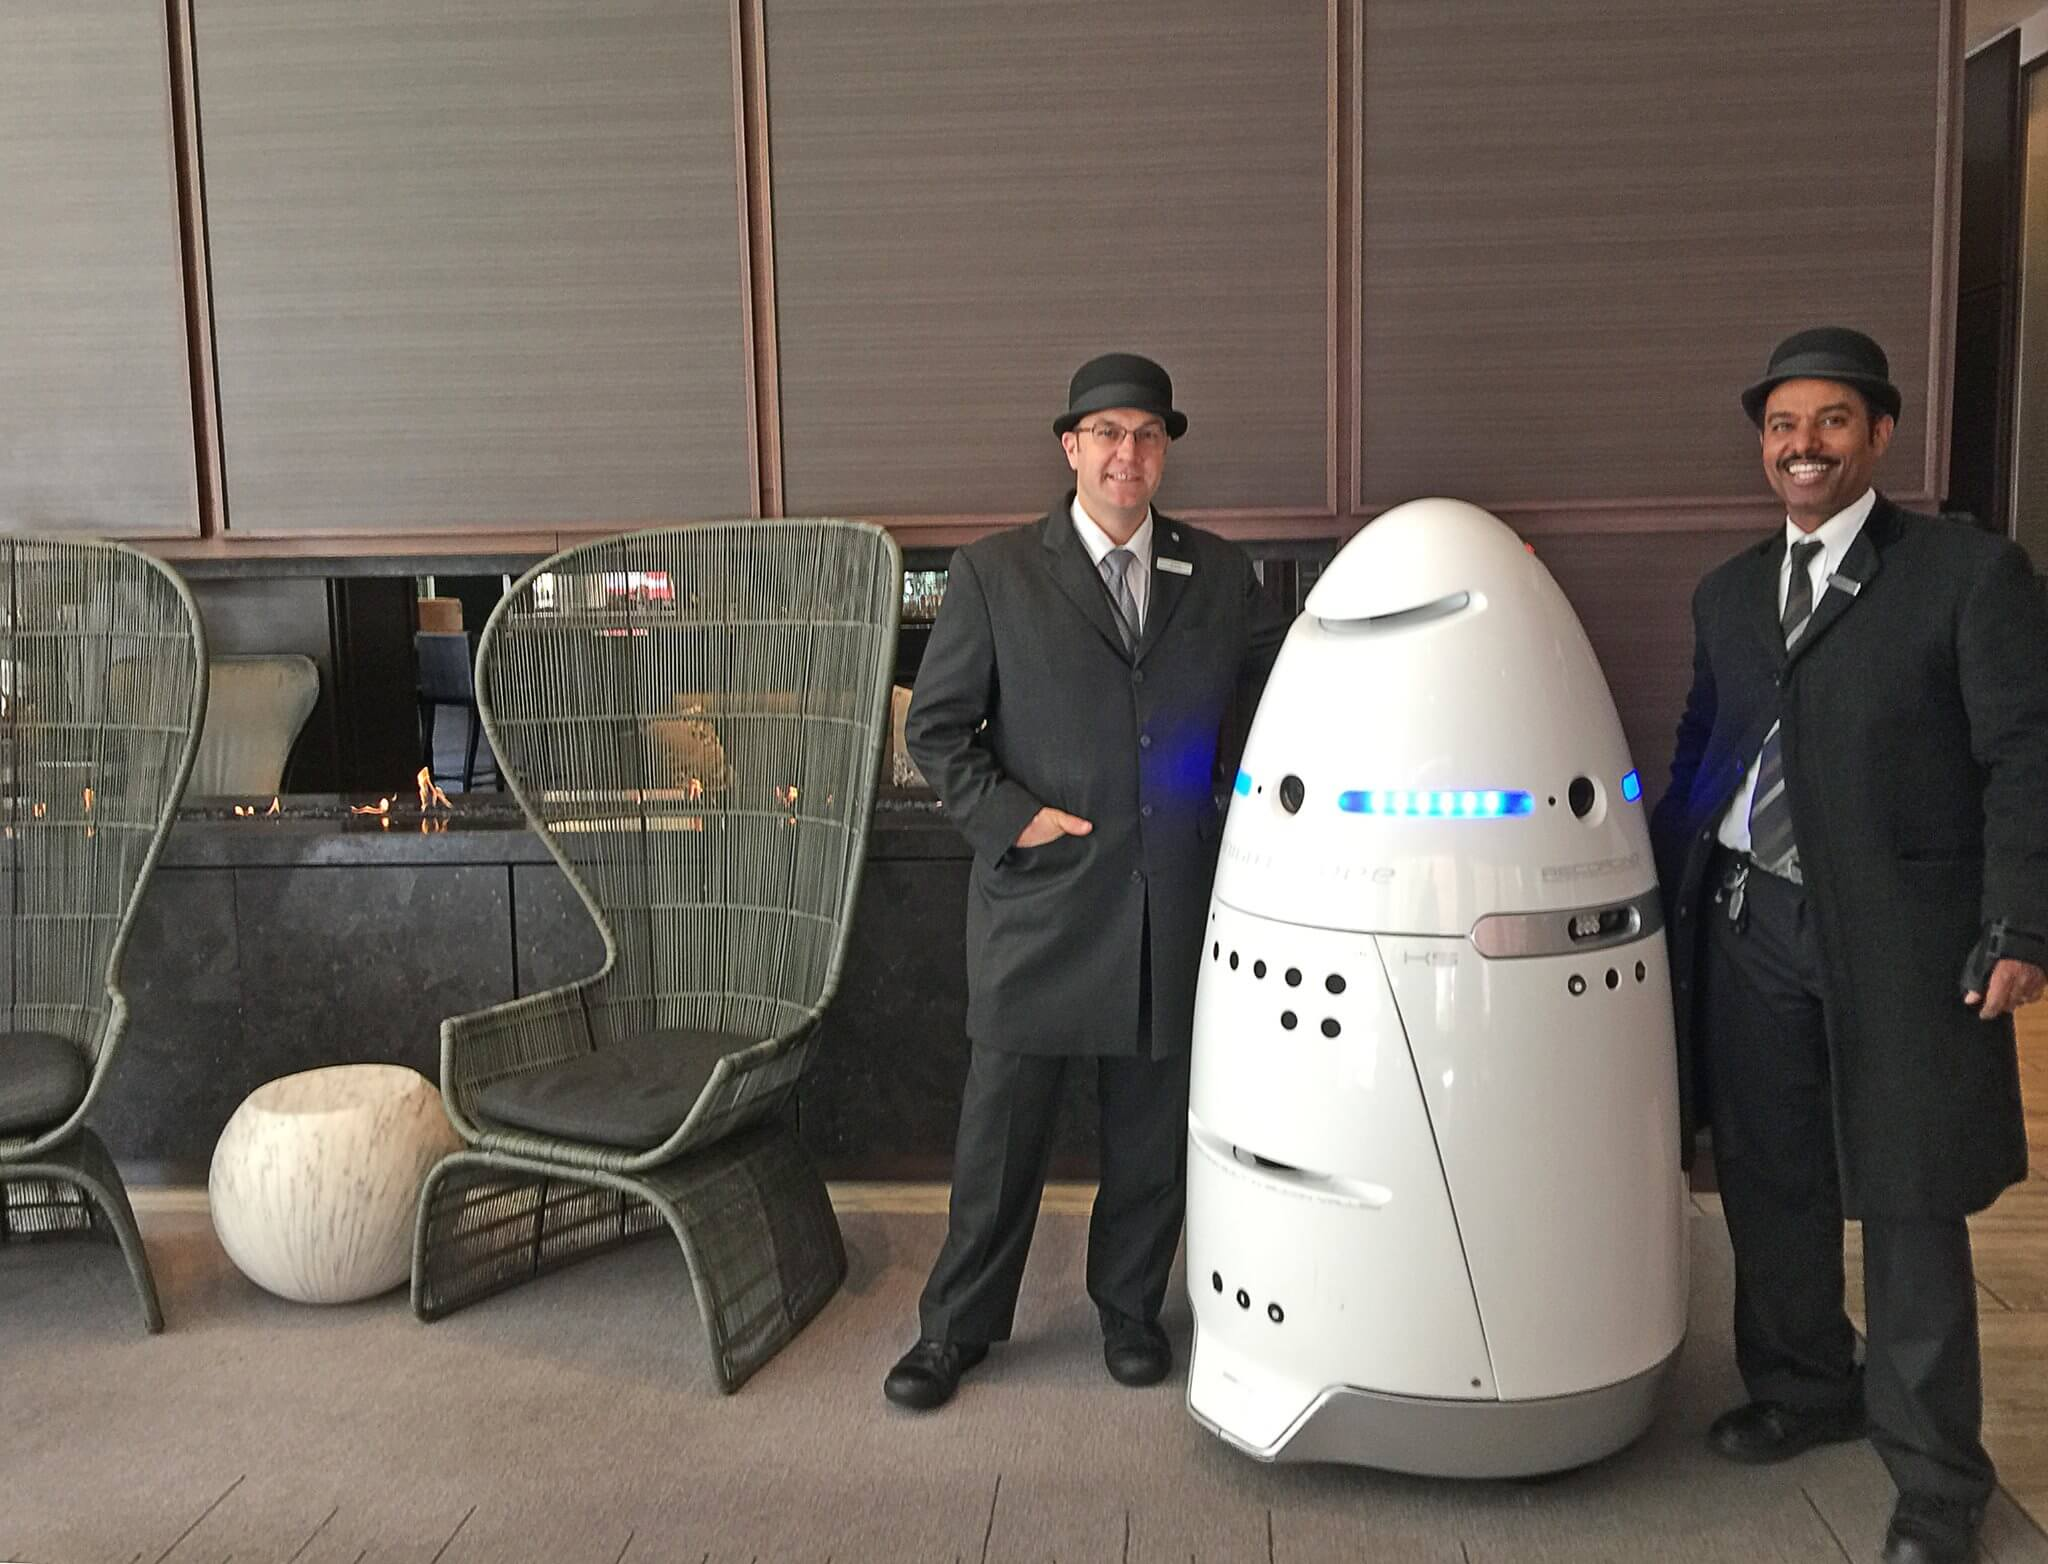 real human security guards with a Knightscope robot